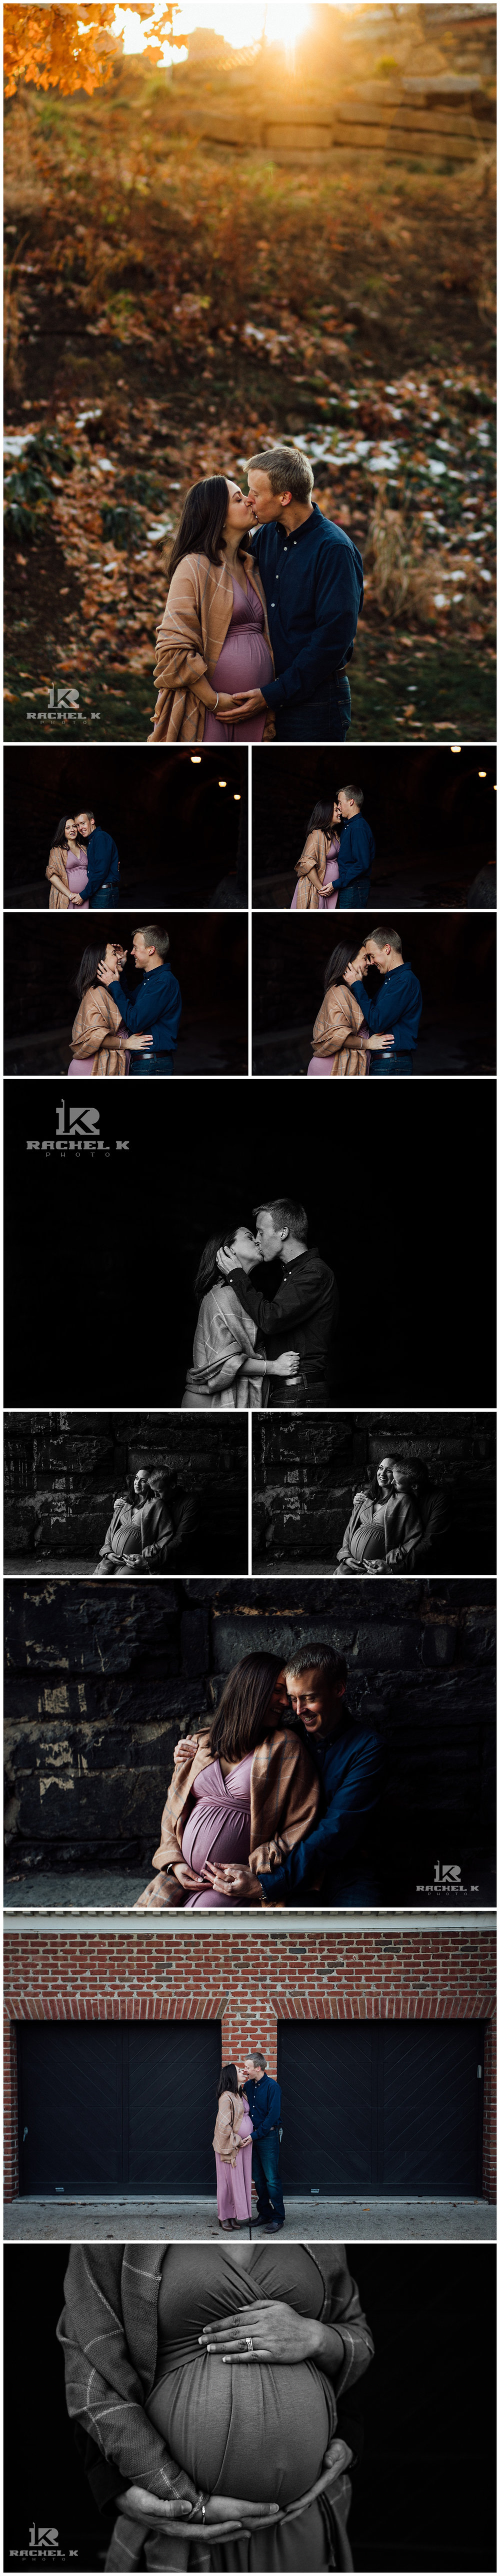 Winter Old Town Alexandria Wilkes tunnel maternity session by Rachel K Photo